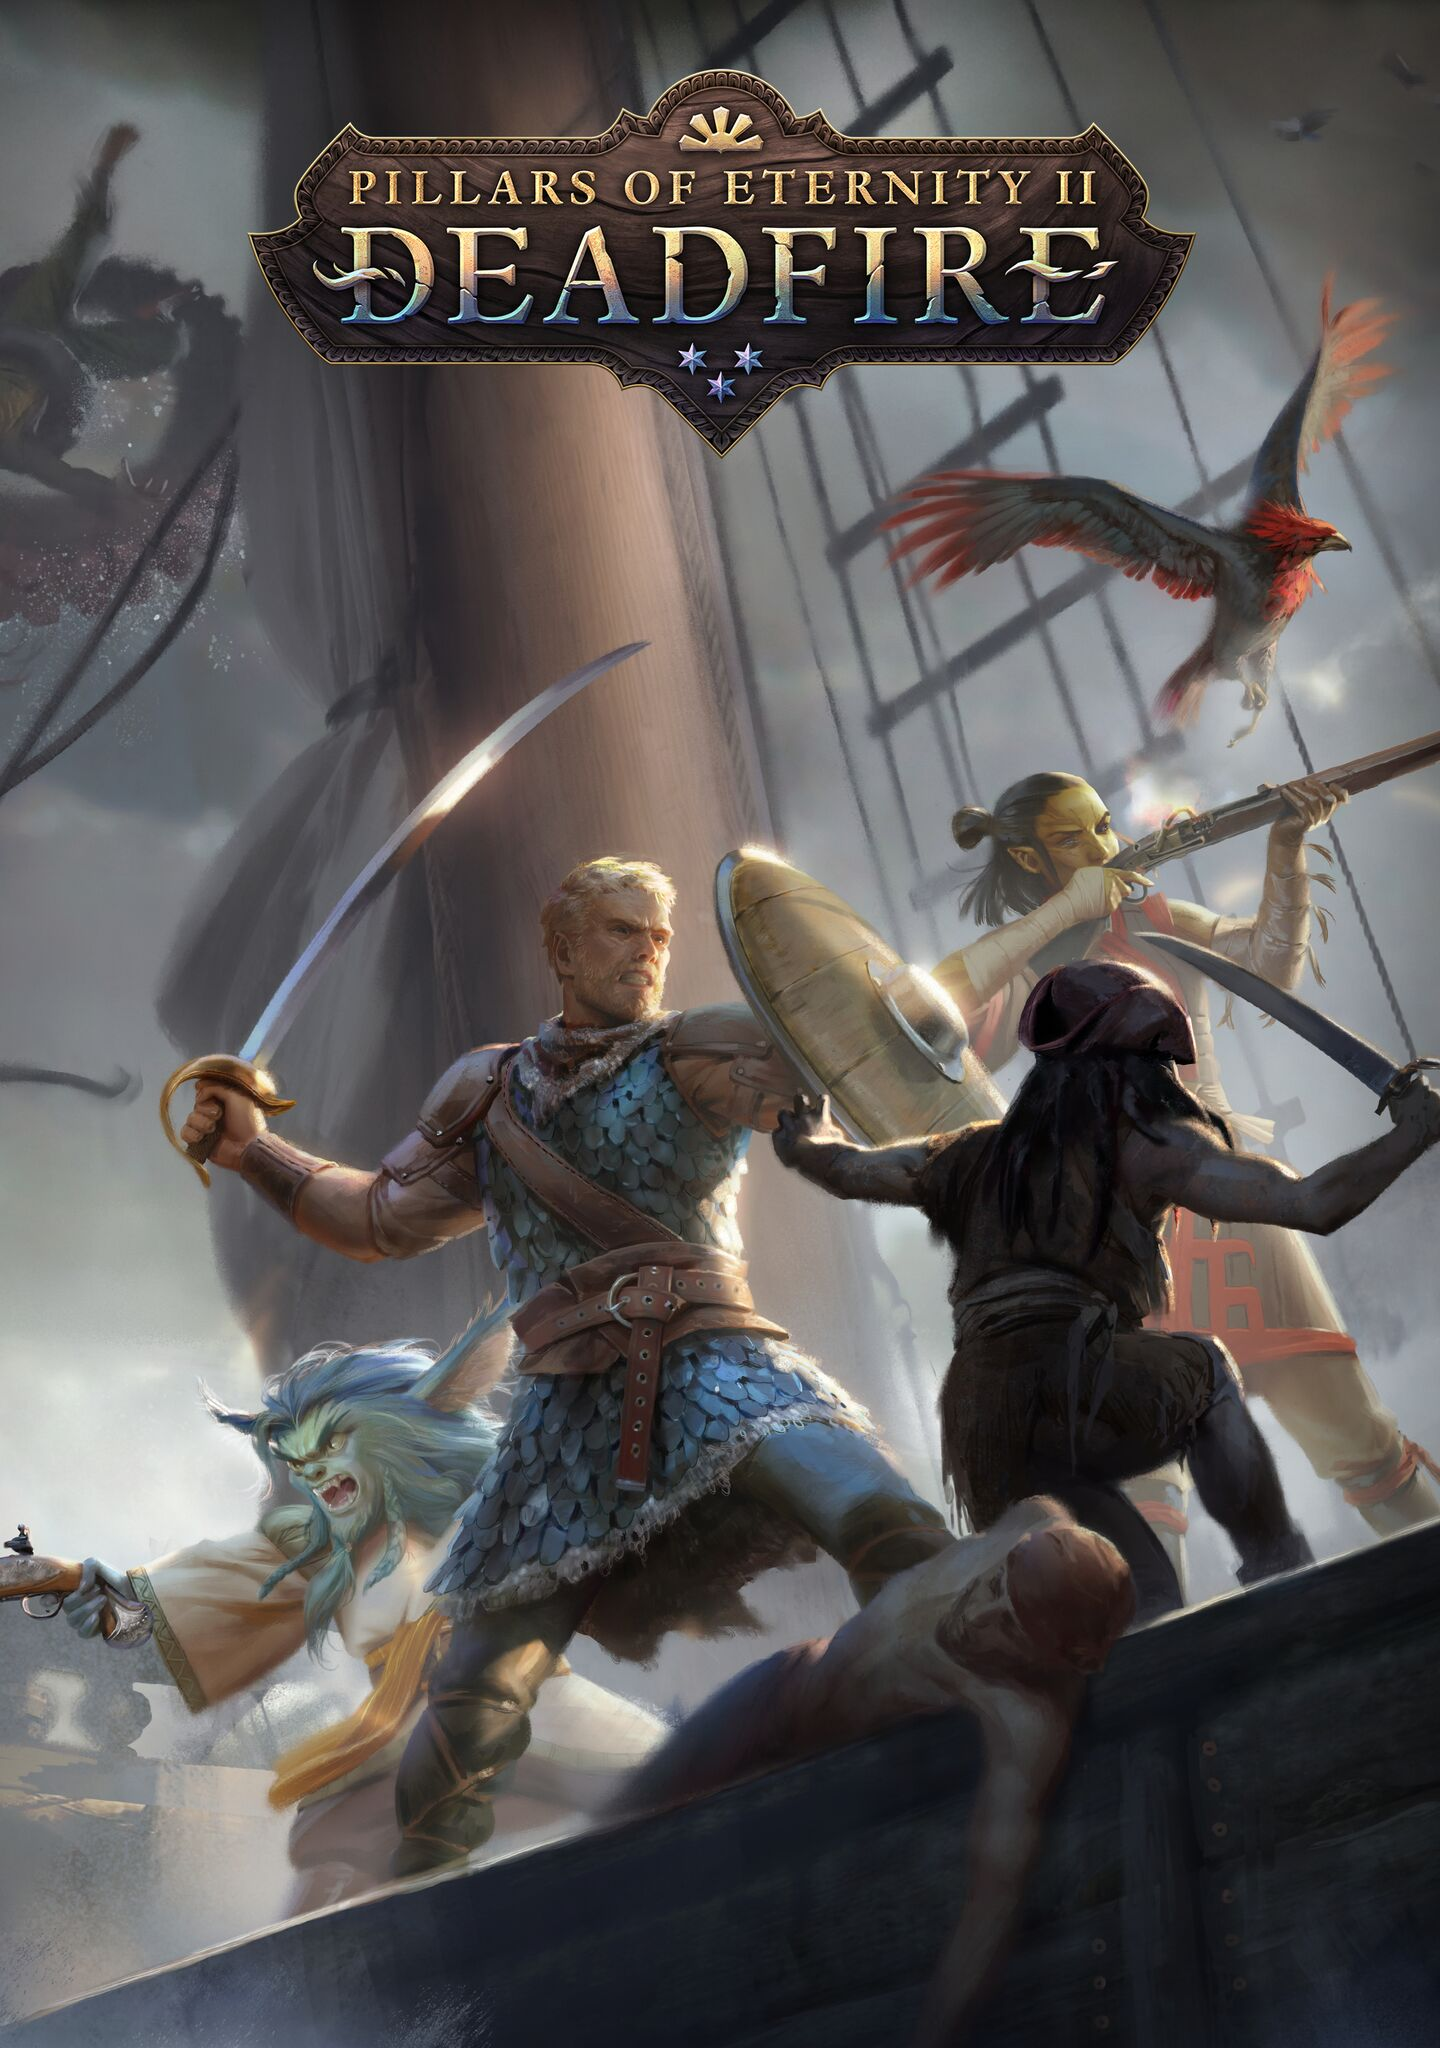 Pillars of Eternity II: Deadfire - Obsidian Edition [Online Game Code] by Versus Evil LLC